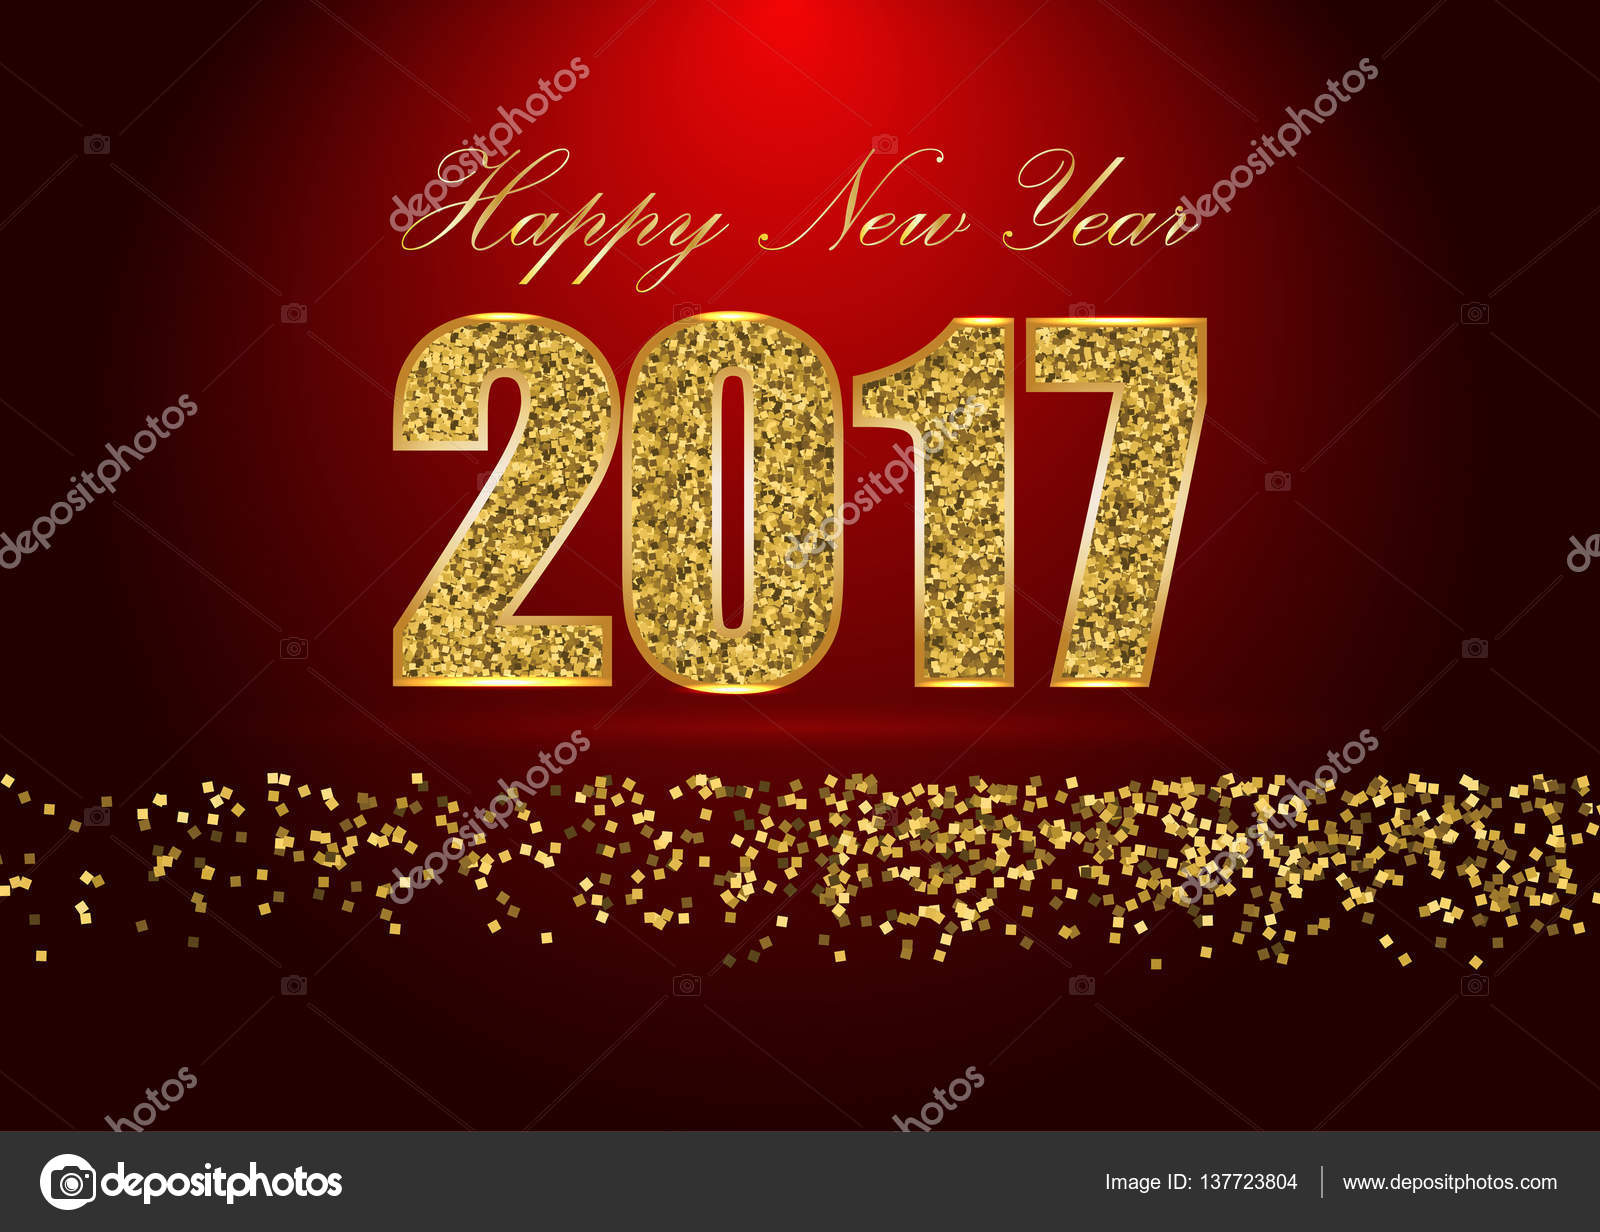 happy new year 2017 golden letter with gold glitter texture border over red background vector by john99